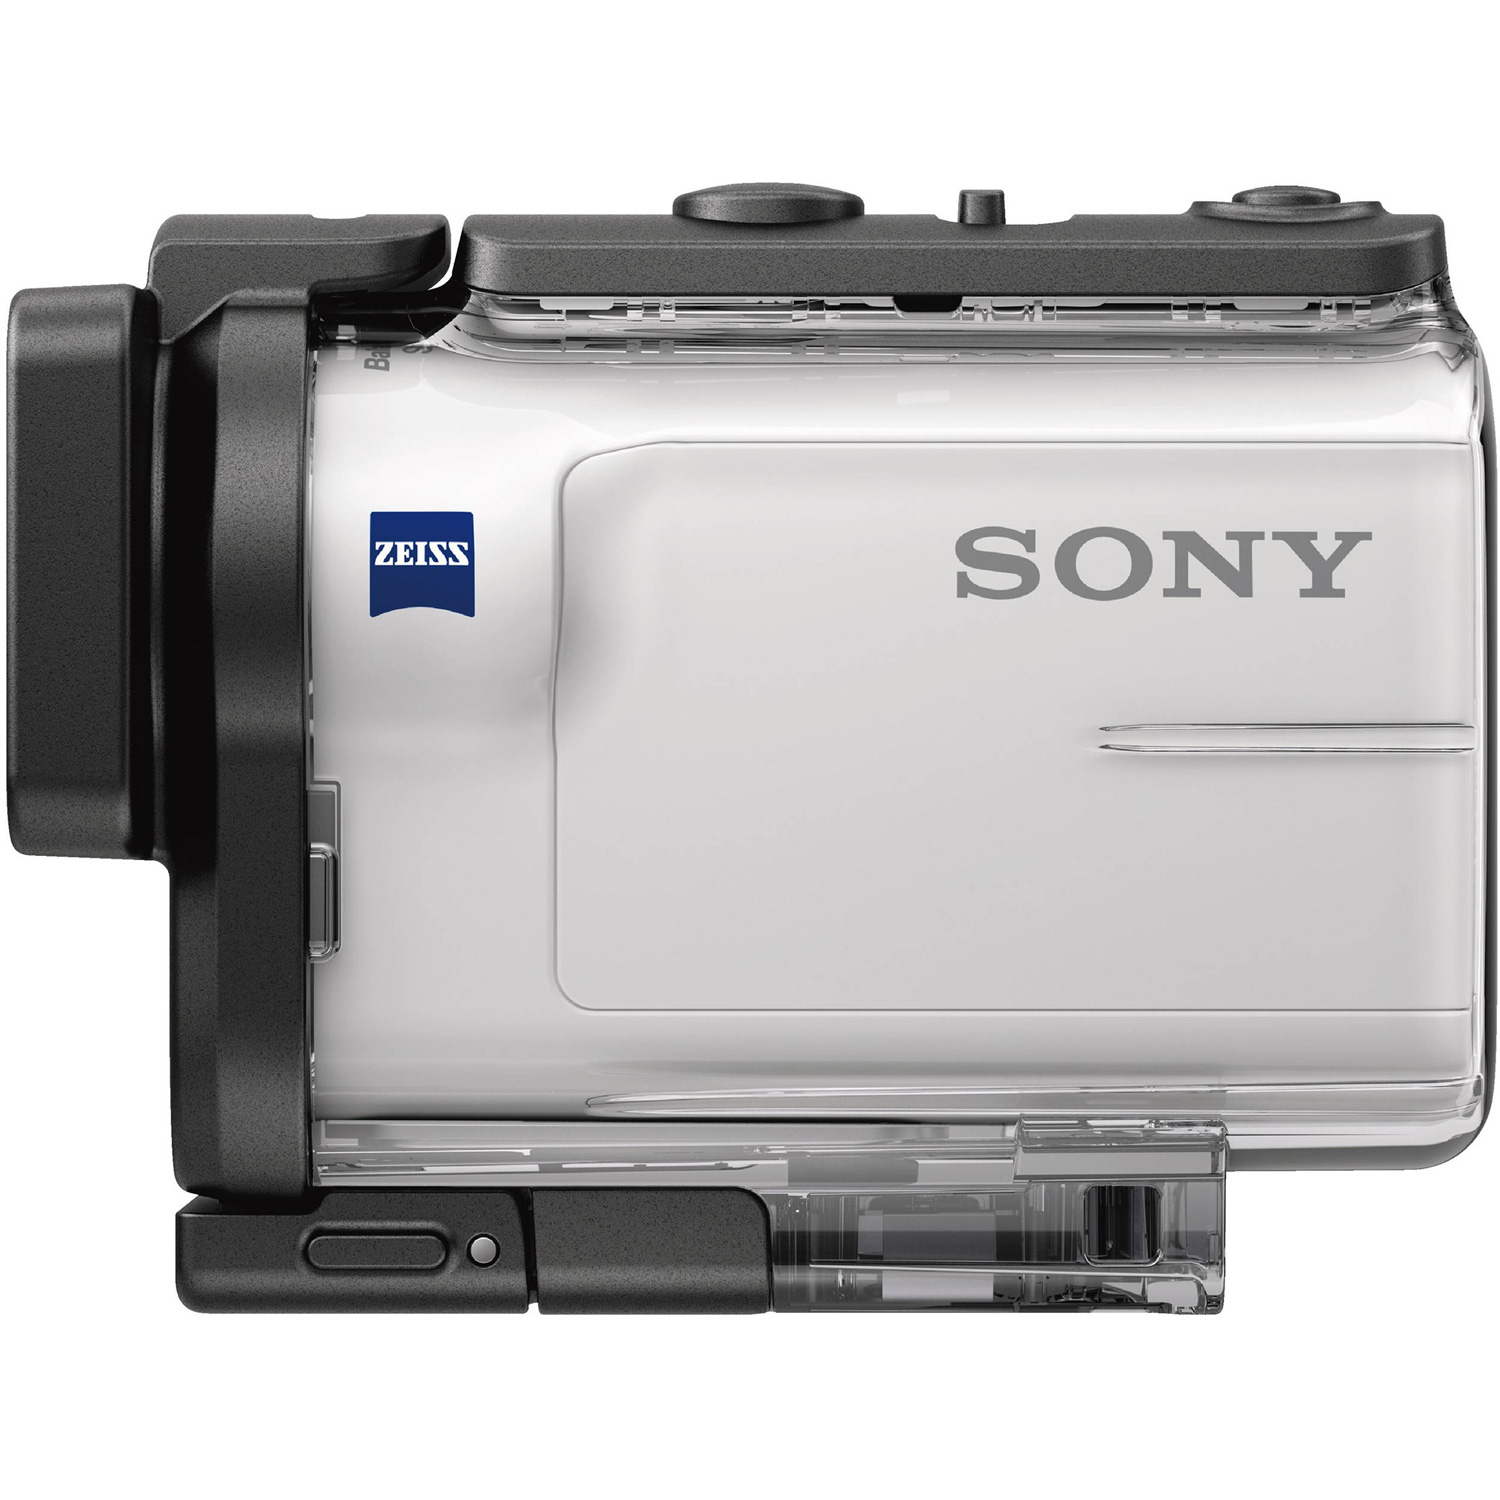 Click here for HDR-AS300 Action Camera prices